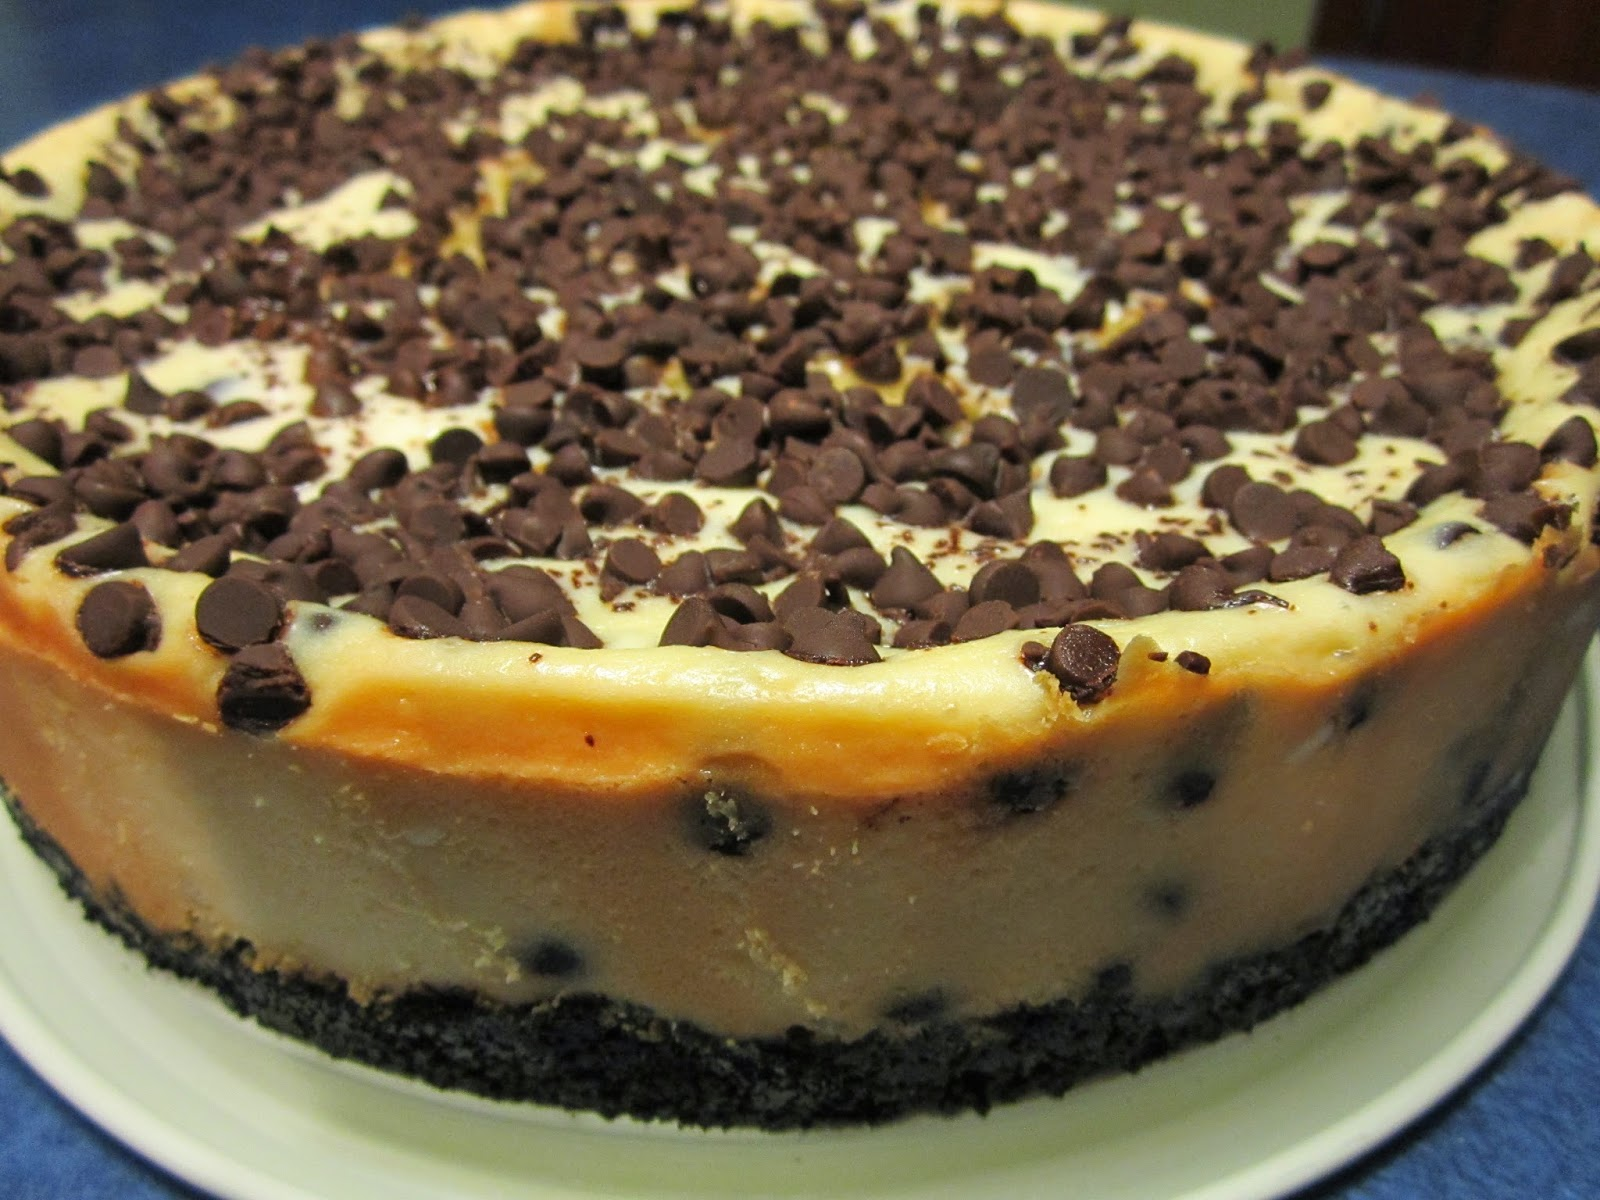 Look at that creamy cheesecake with all that chocolate! Seriously ...